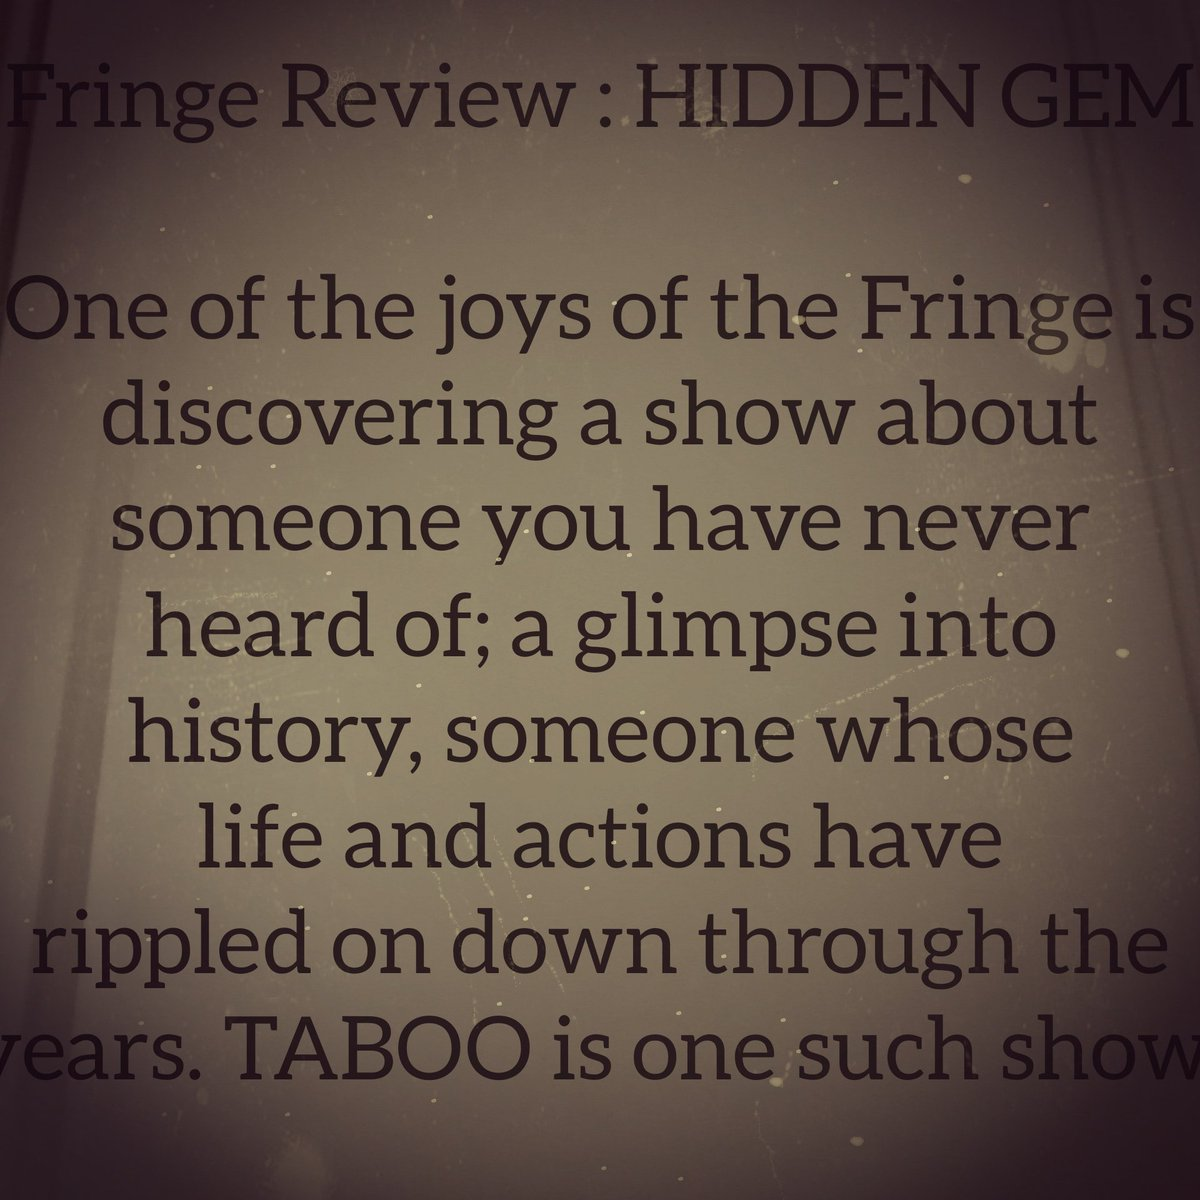 Quote from Edfringe review 2019 by Kate Saffin. 🌻 #adelaideFringe #AnnaThomas #treasury1860 https://t.co/hOGBYvEDEA